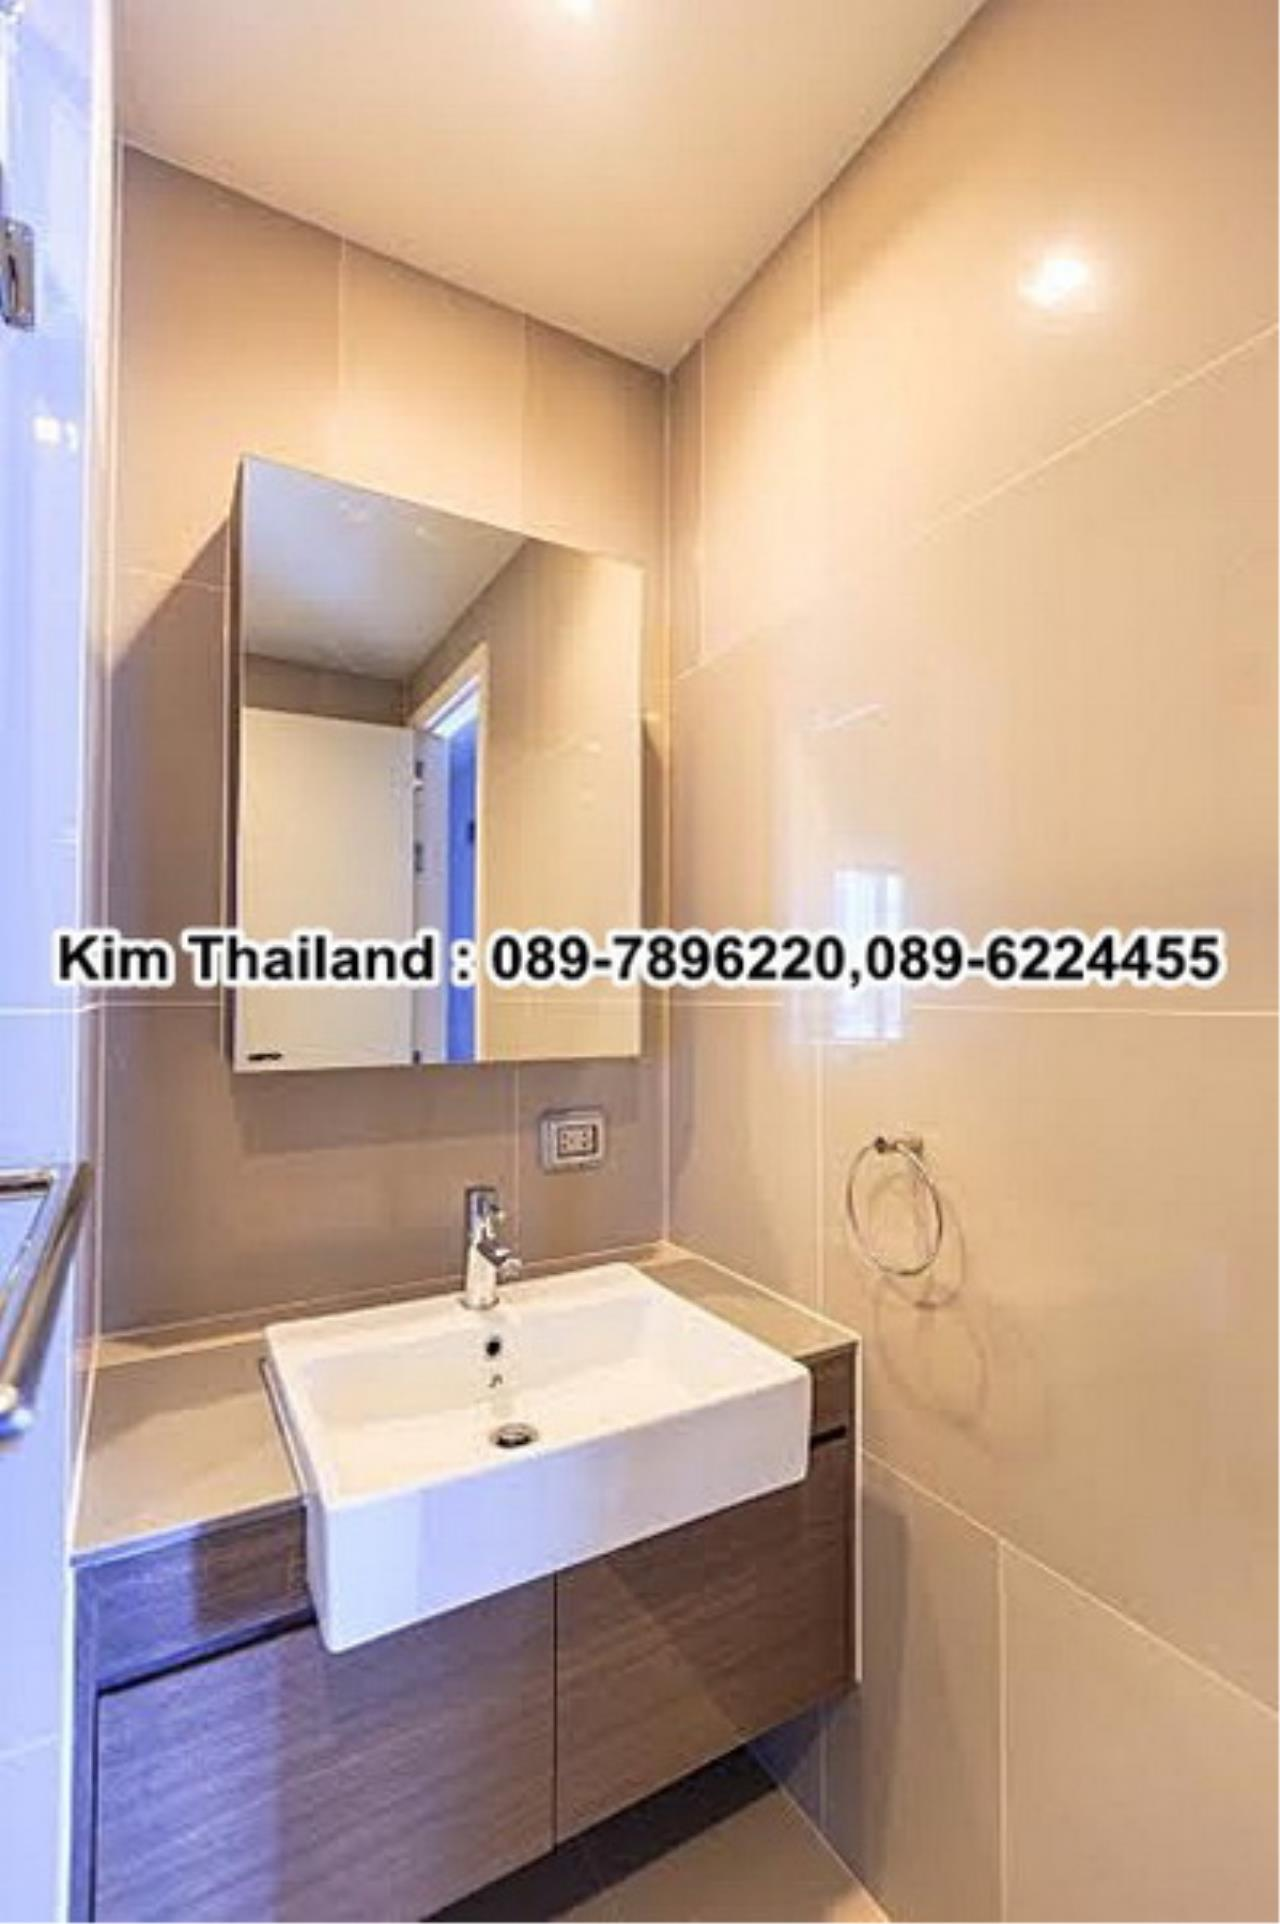 BKKcondorental Agency's For rent, Condo Quinn Ratchada 17., Area 45 sq.m. 1 bedroom. Rental 28000 THB per month. 14